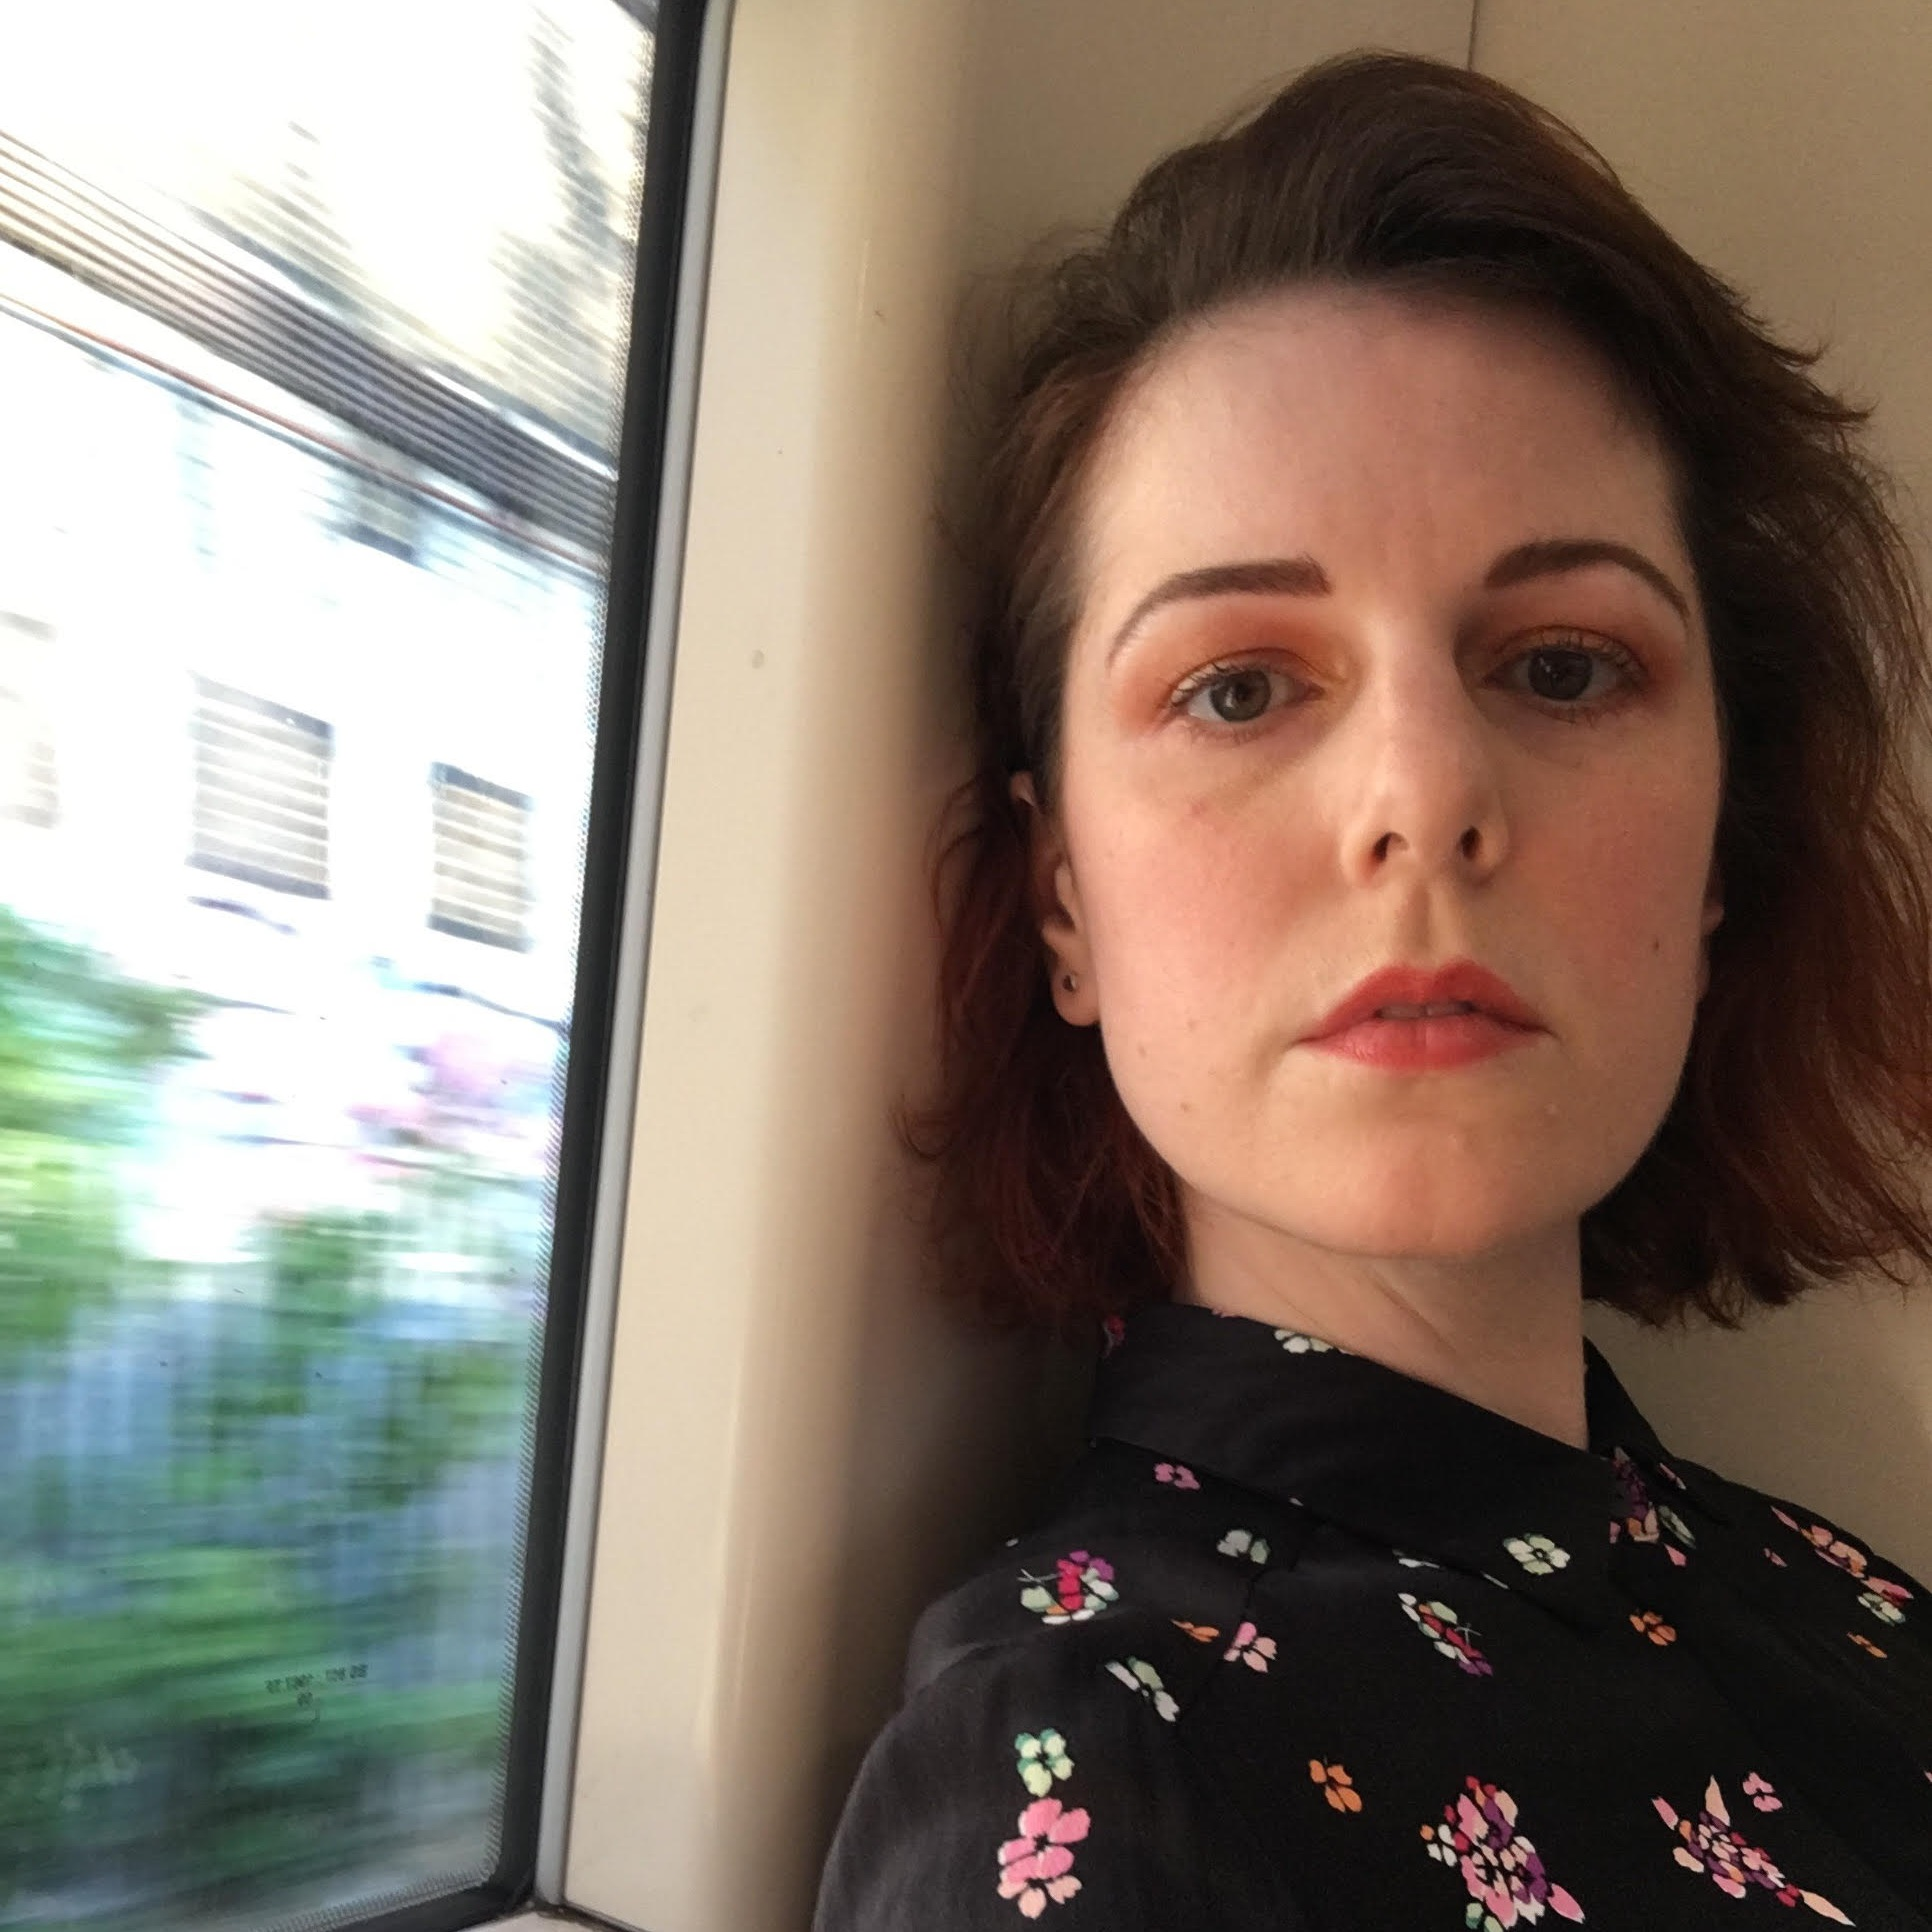 Vanessa Pelz-Sharpe  is a writer, born and bred in London. Working primarily within the creative non-fiction genre, she focuses on issues such as queer sexuality, chronic illness, Kim Kardashian, and millennial poverty.